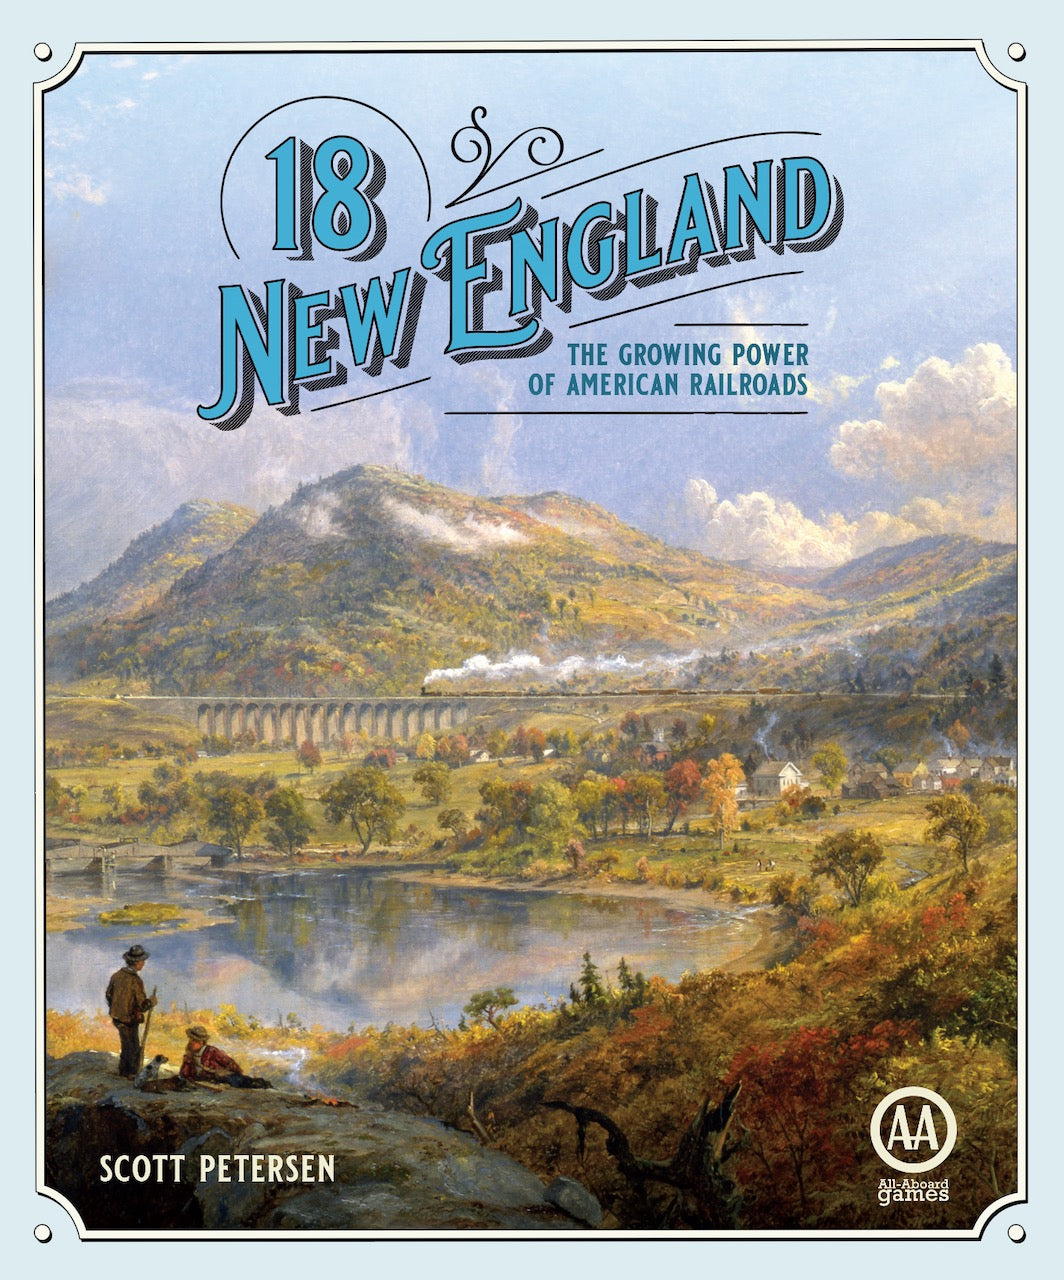 INTERNATIONAL - 18NewEngland Preorder (Shipping Included)